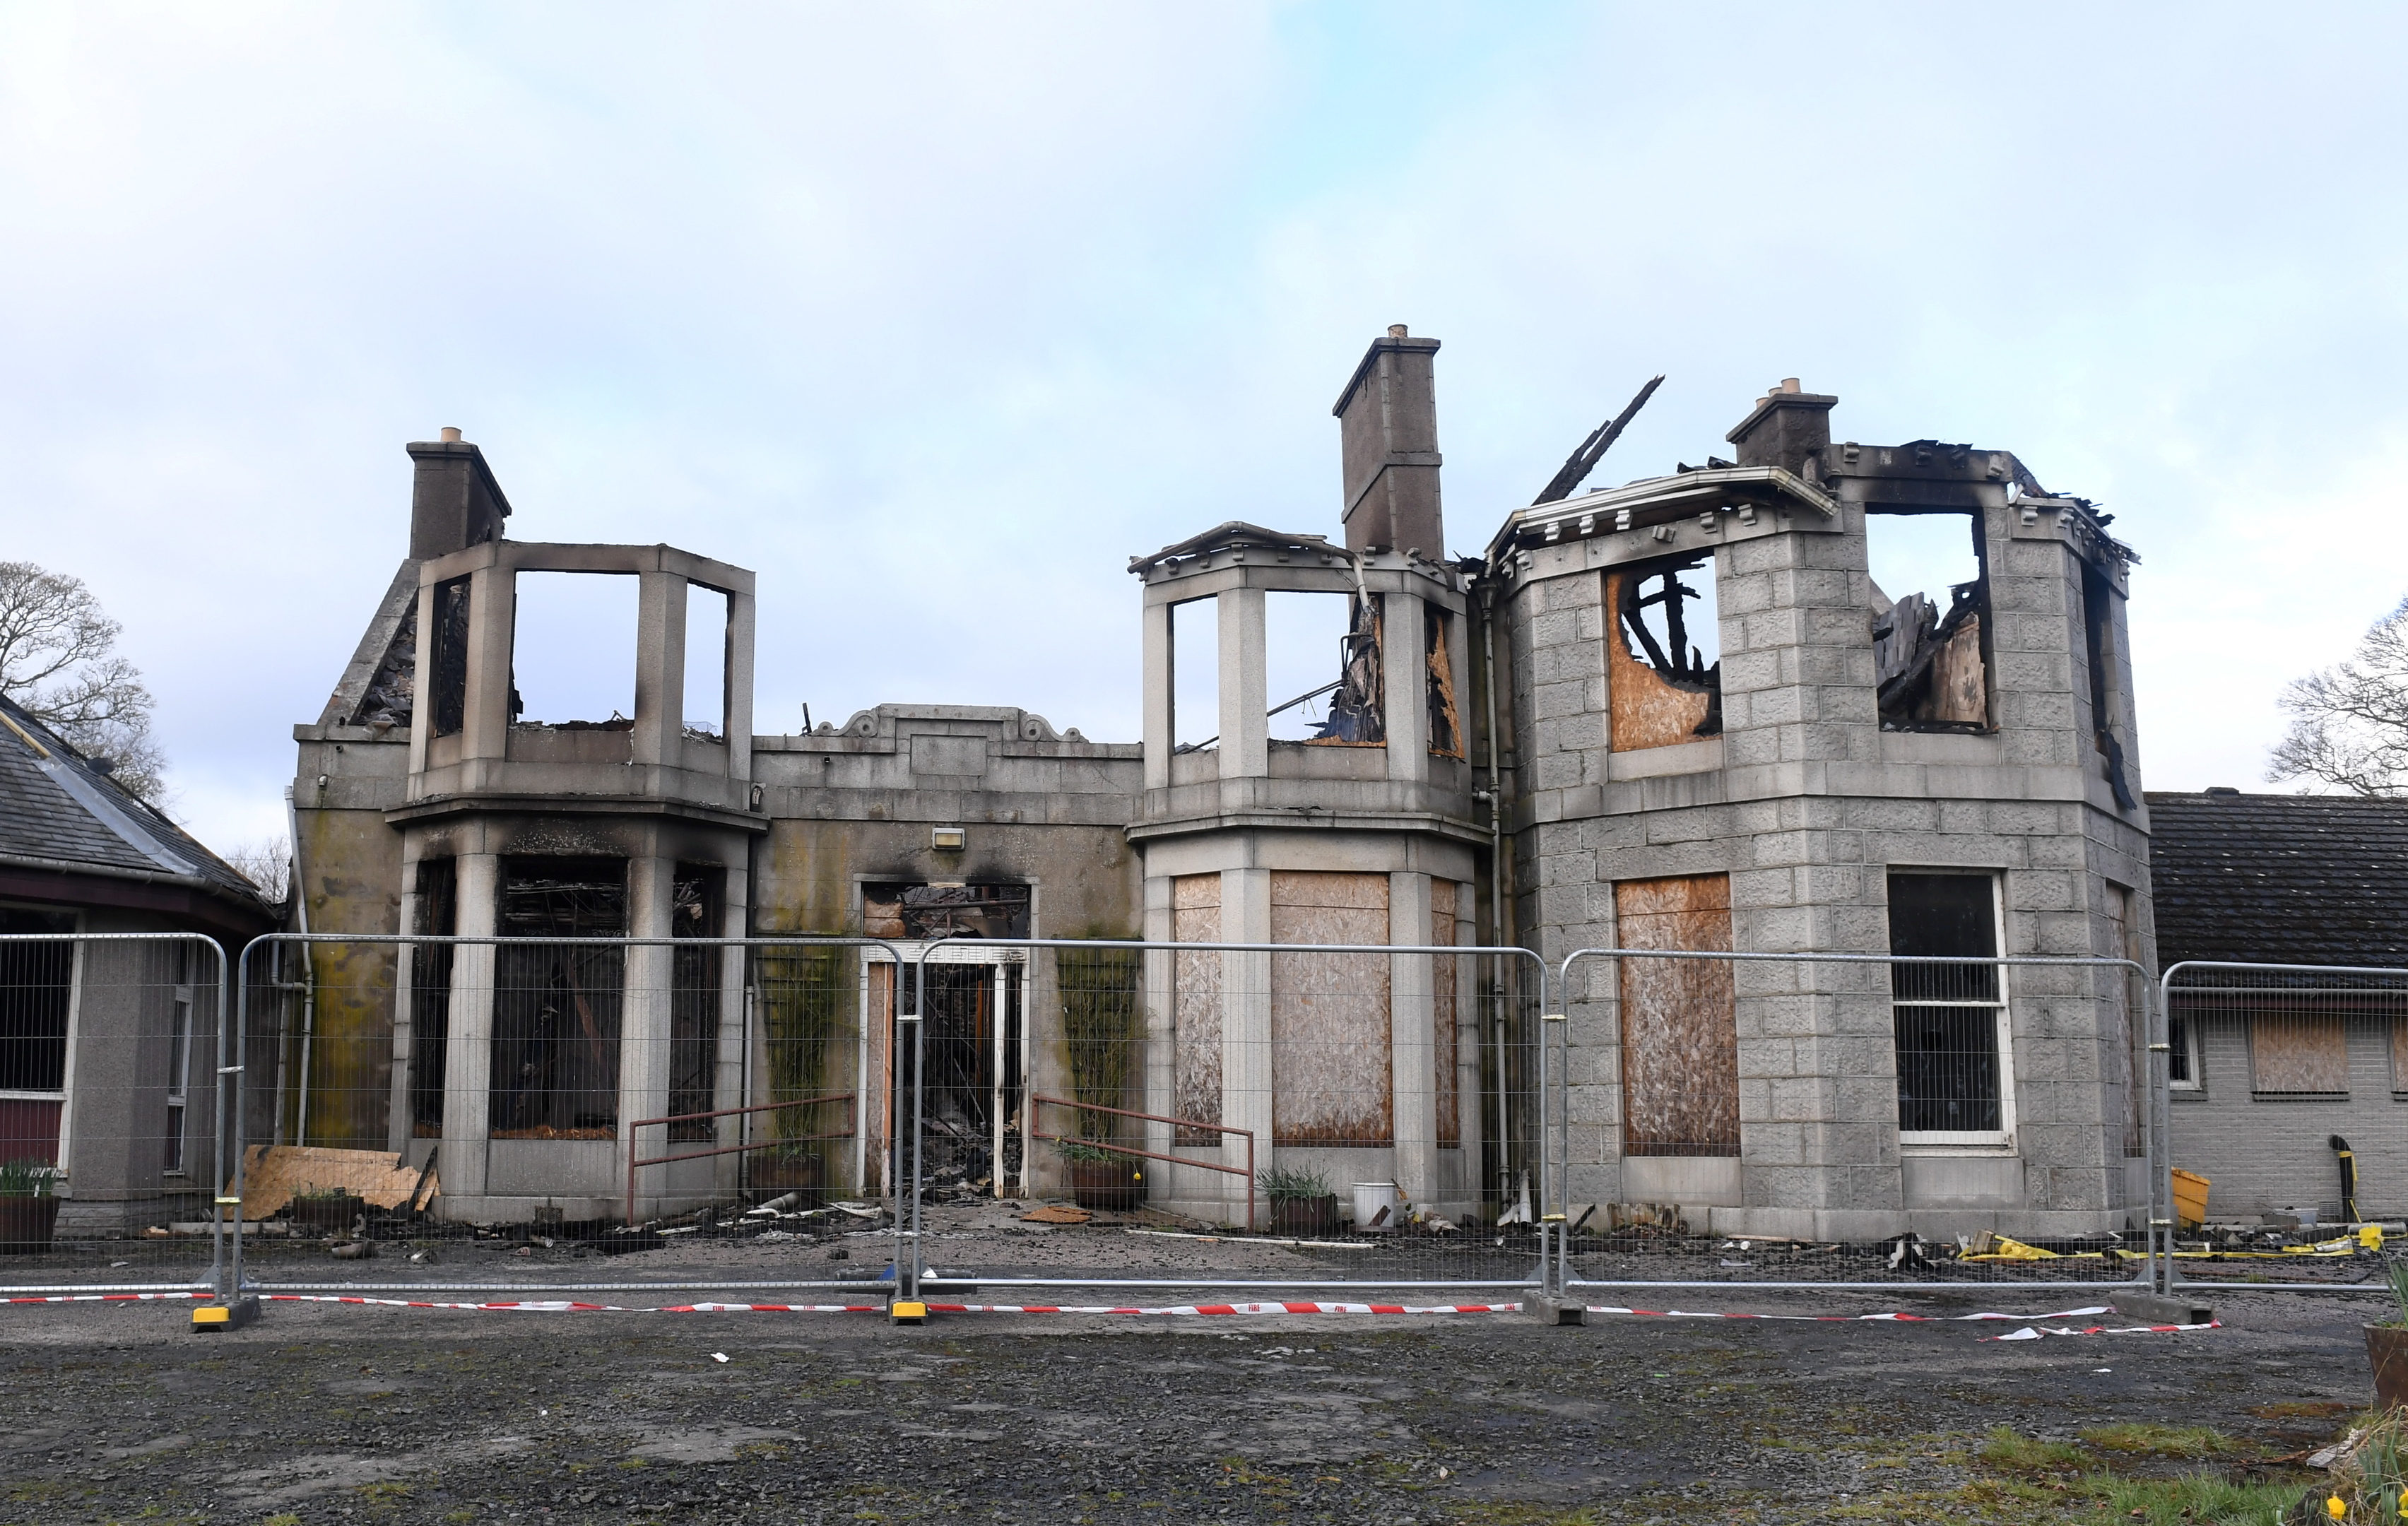 Aftermath of the fire at Blythewood House, Port Elphinstone. Picture: Chris Sumner